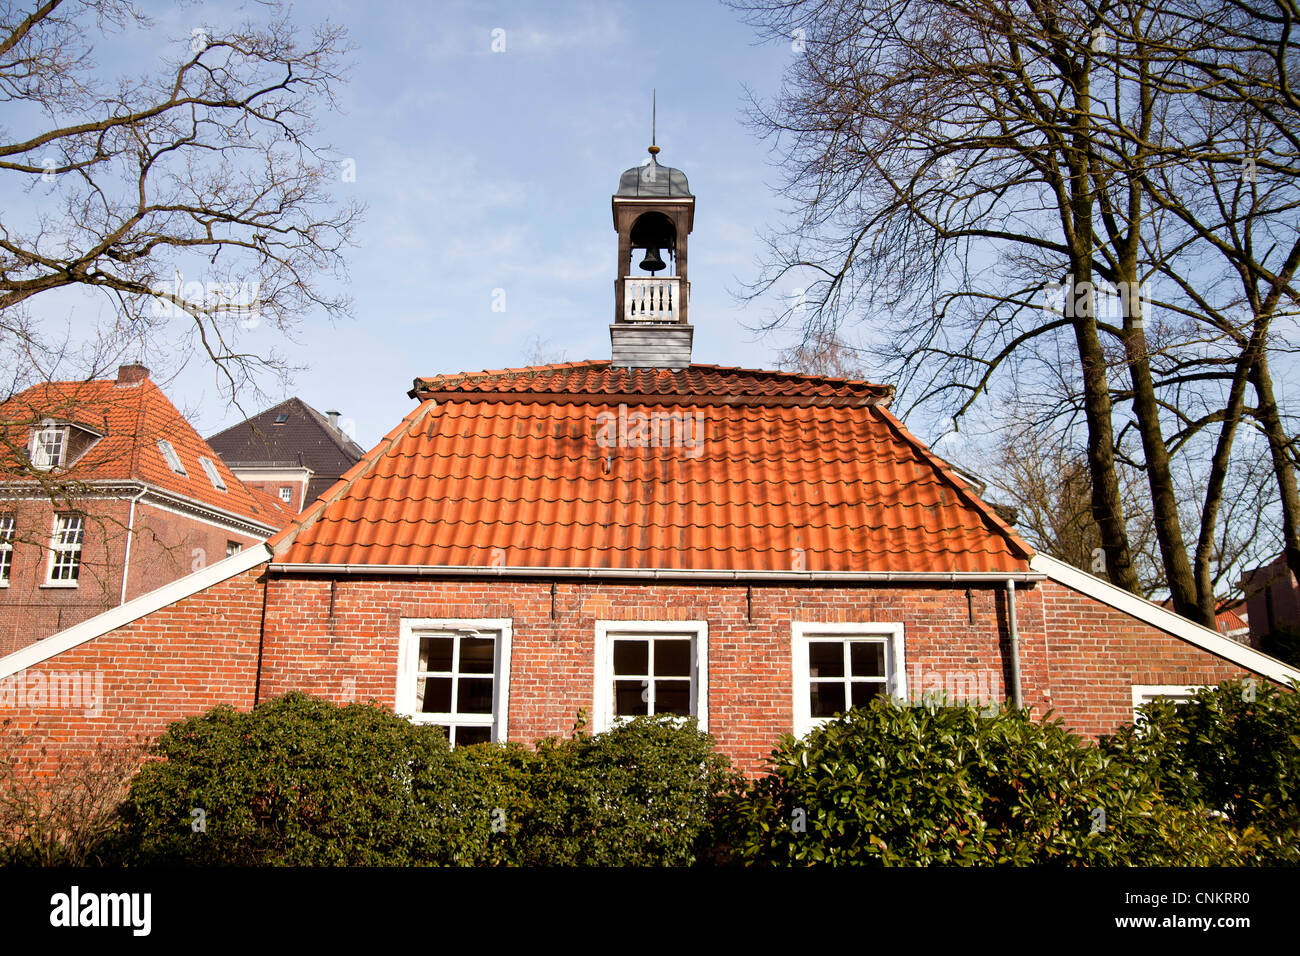 historic Pingelhus in Aurich, East Frisia, Lower Saxony, Germany - Stock Image